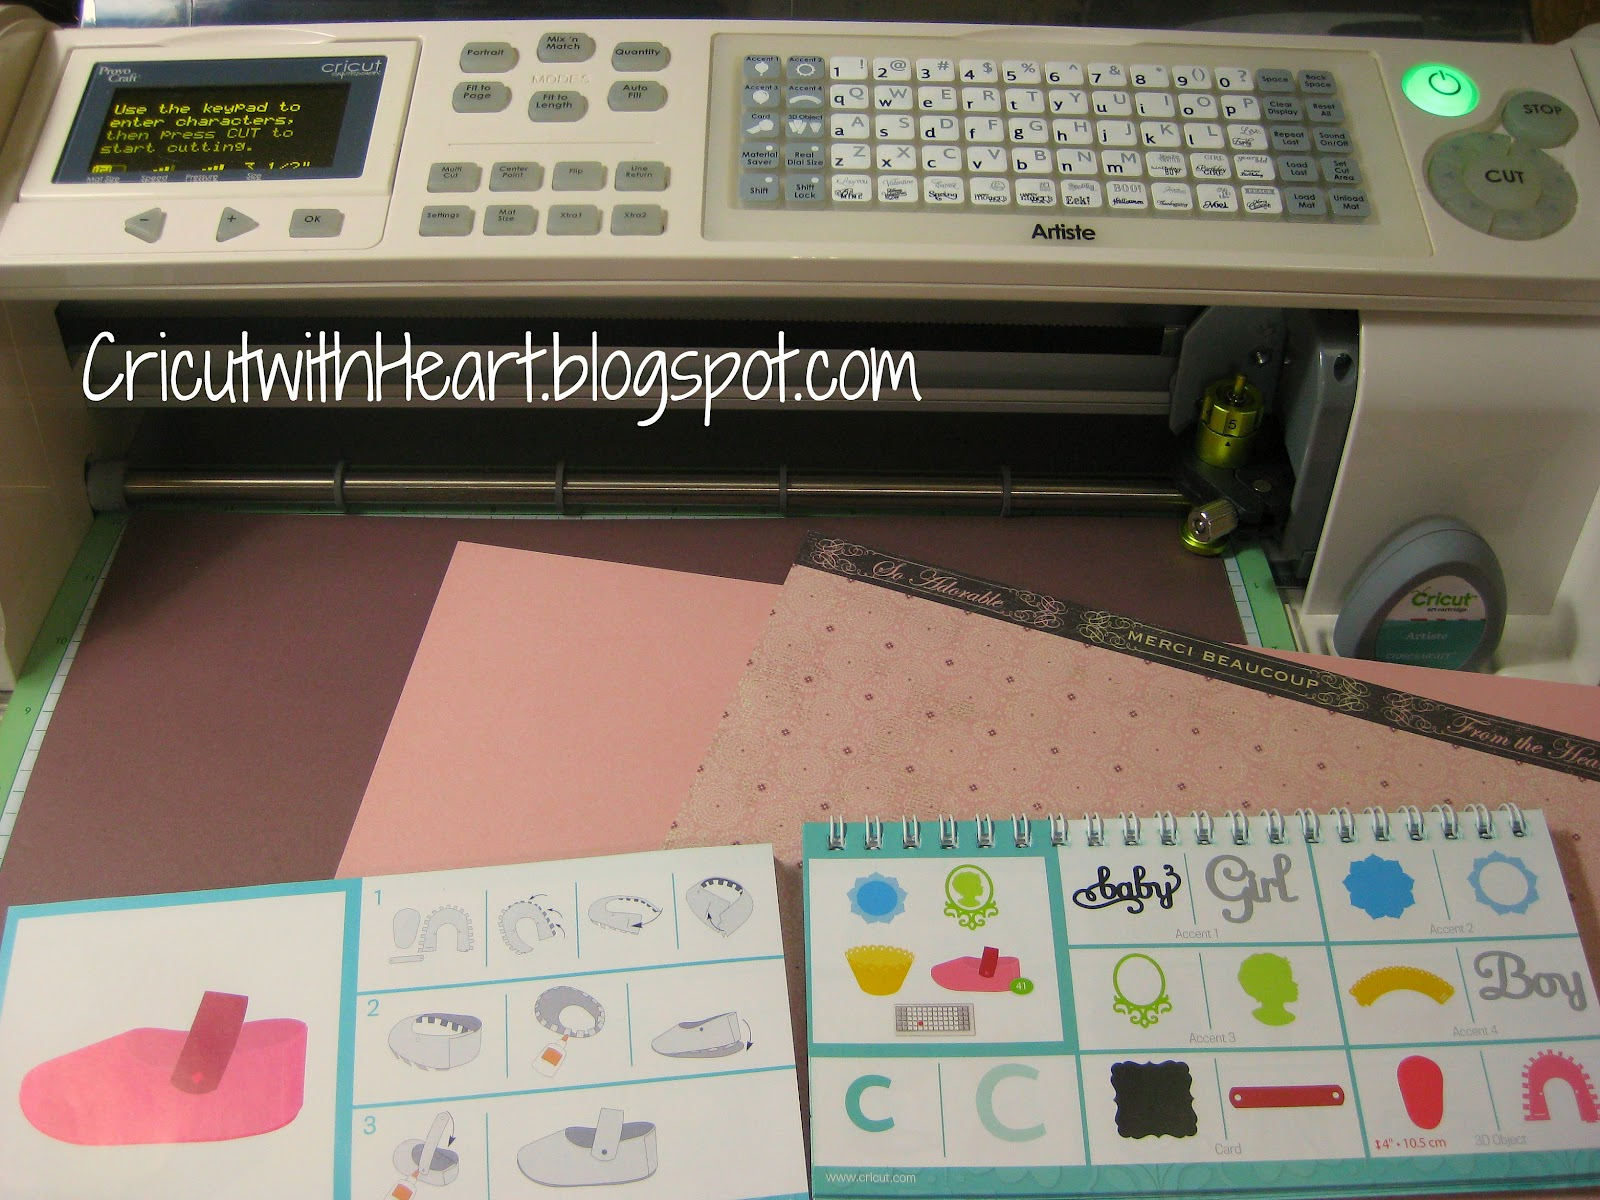 Fantabulous cricut challenge blog fantabulous friday 165 wedding - You Ll Notice That The C Key Has Some Really Cute Baby Cuts Including The Cute Little 3 D Shoe Can You See The Little Green Circle With The Number 41